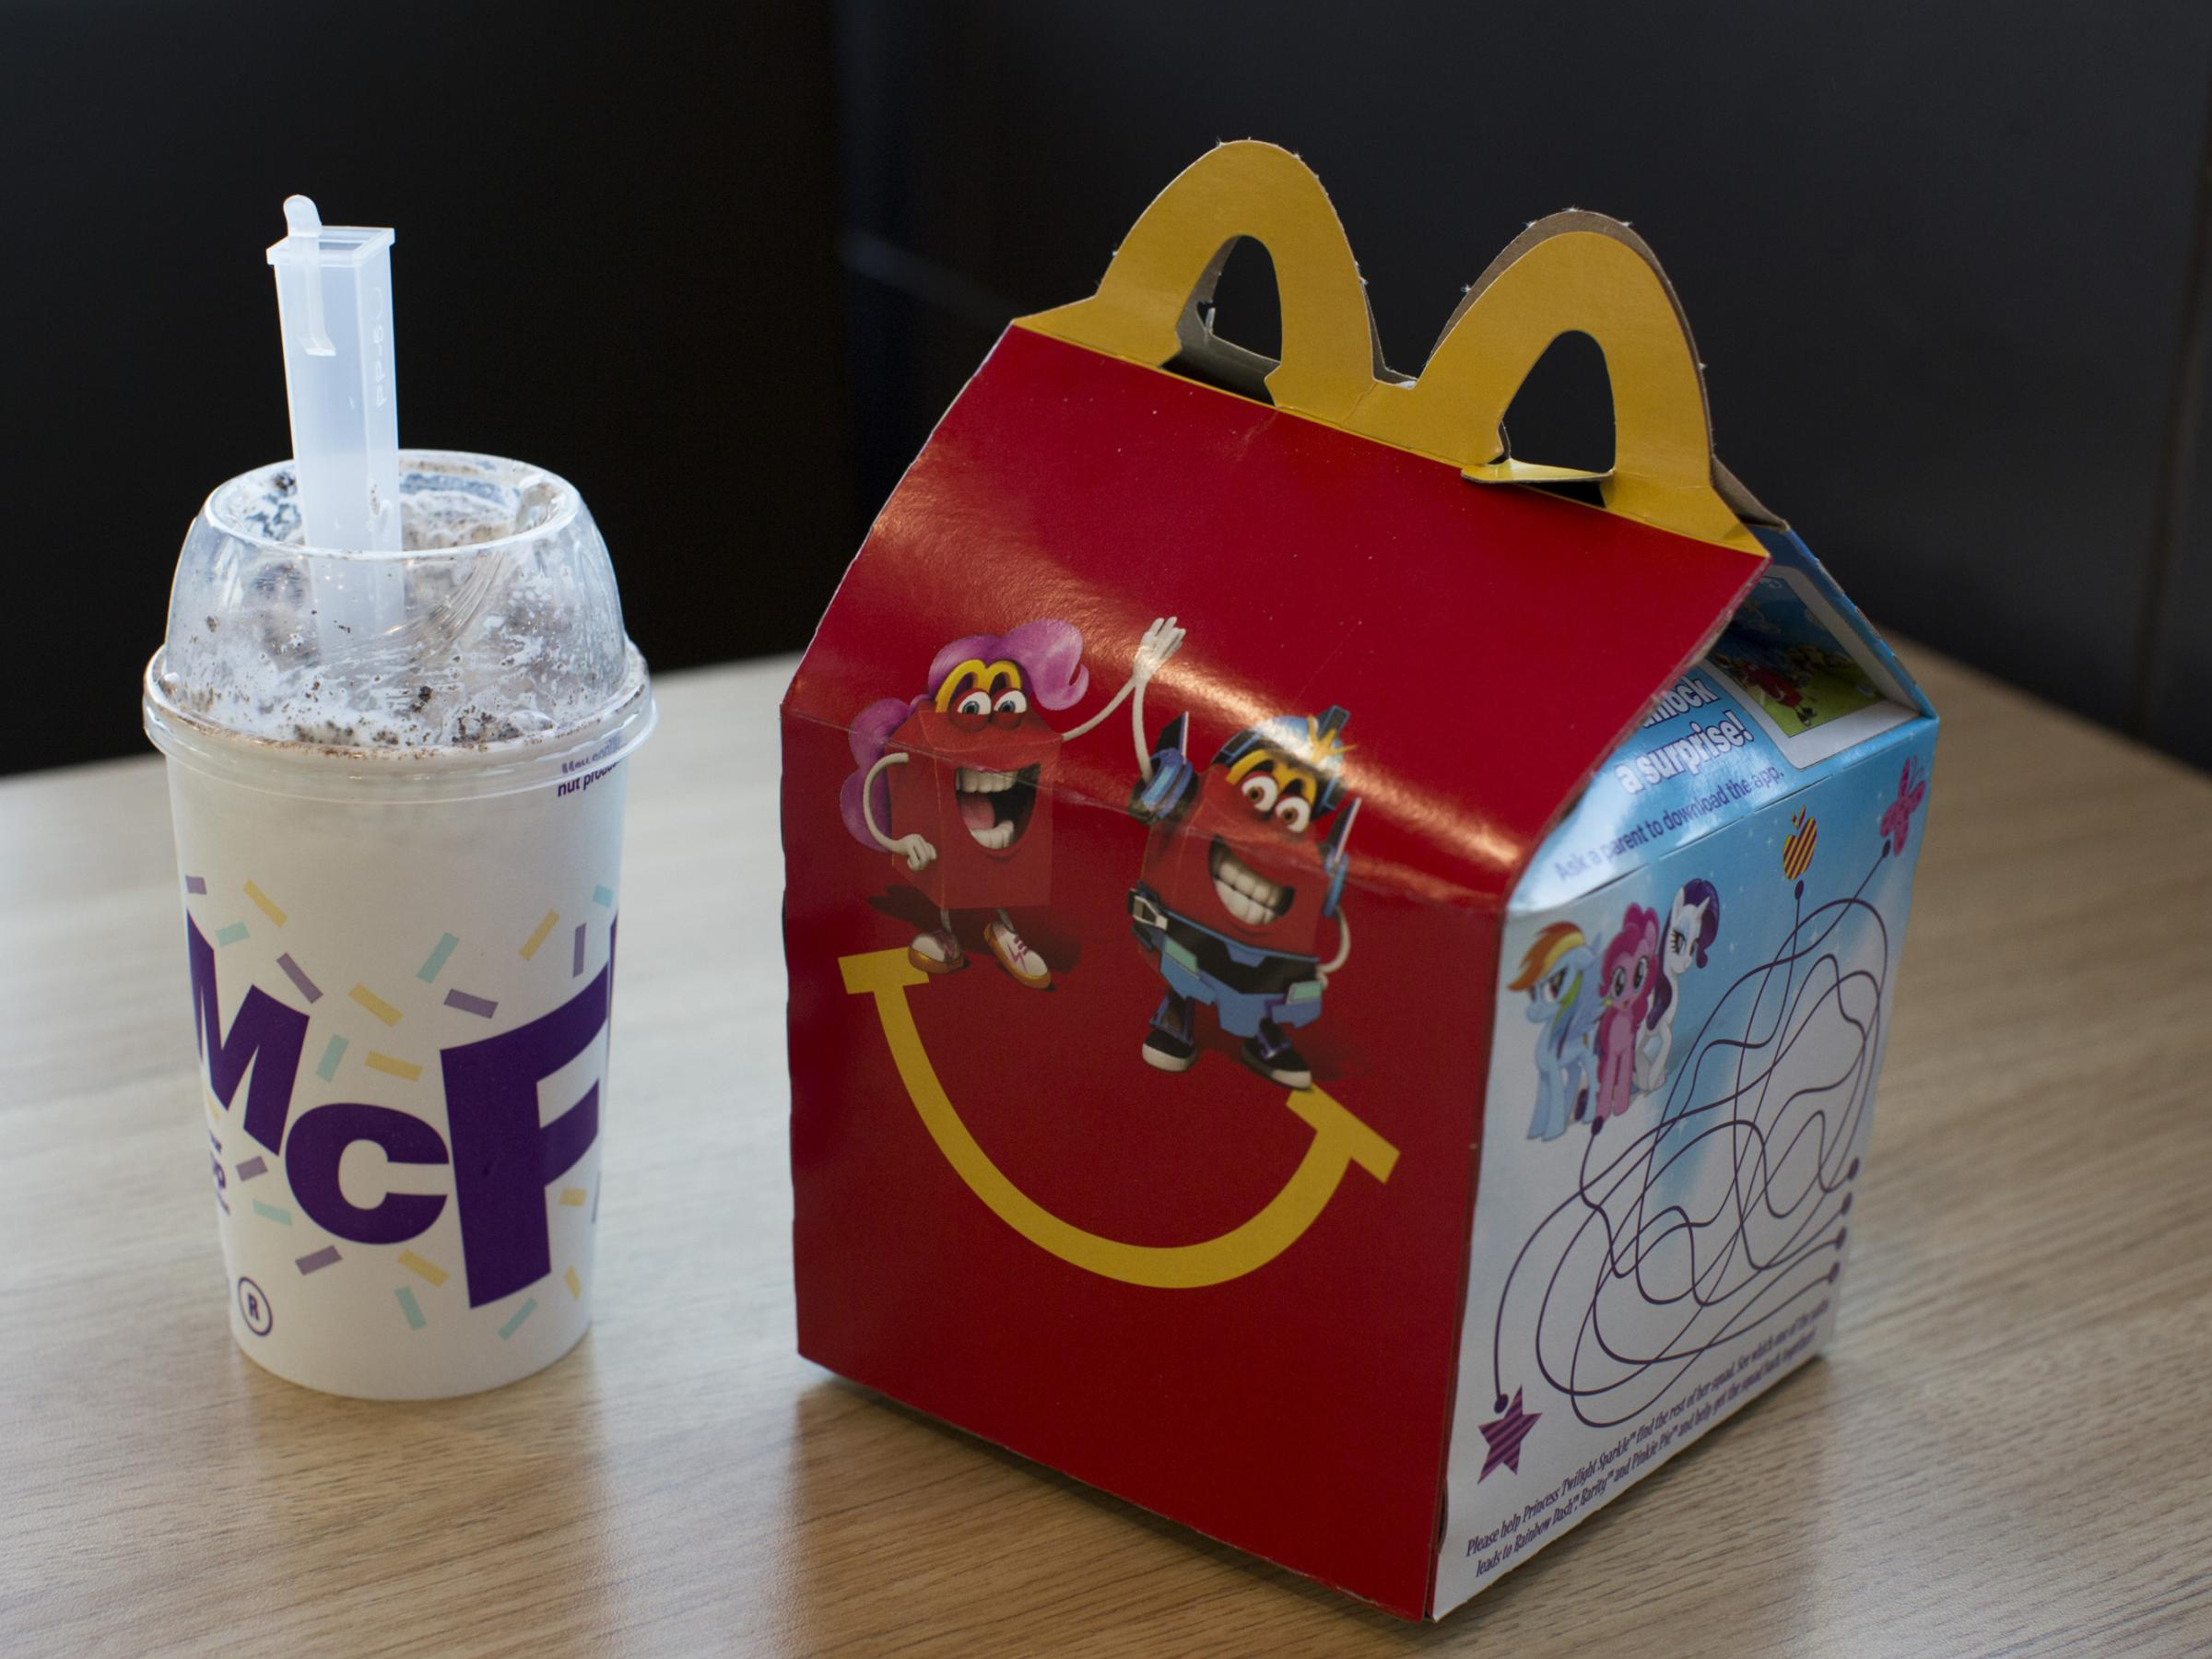 McDonald's Commits To More Balanced Happy Meals By 2022 | BPR